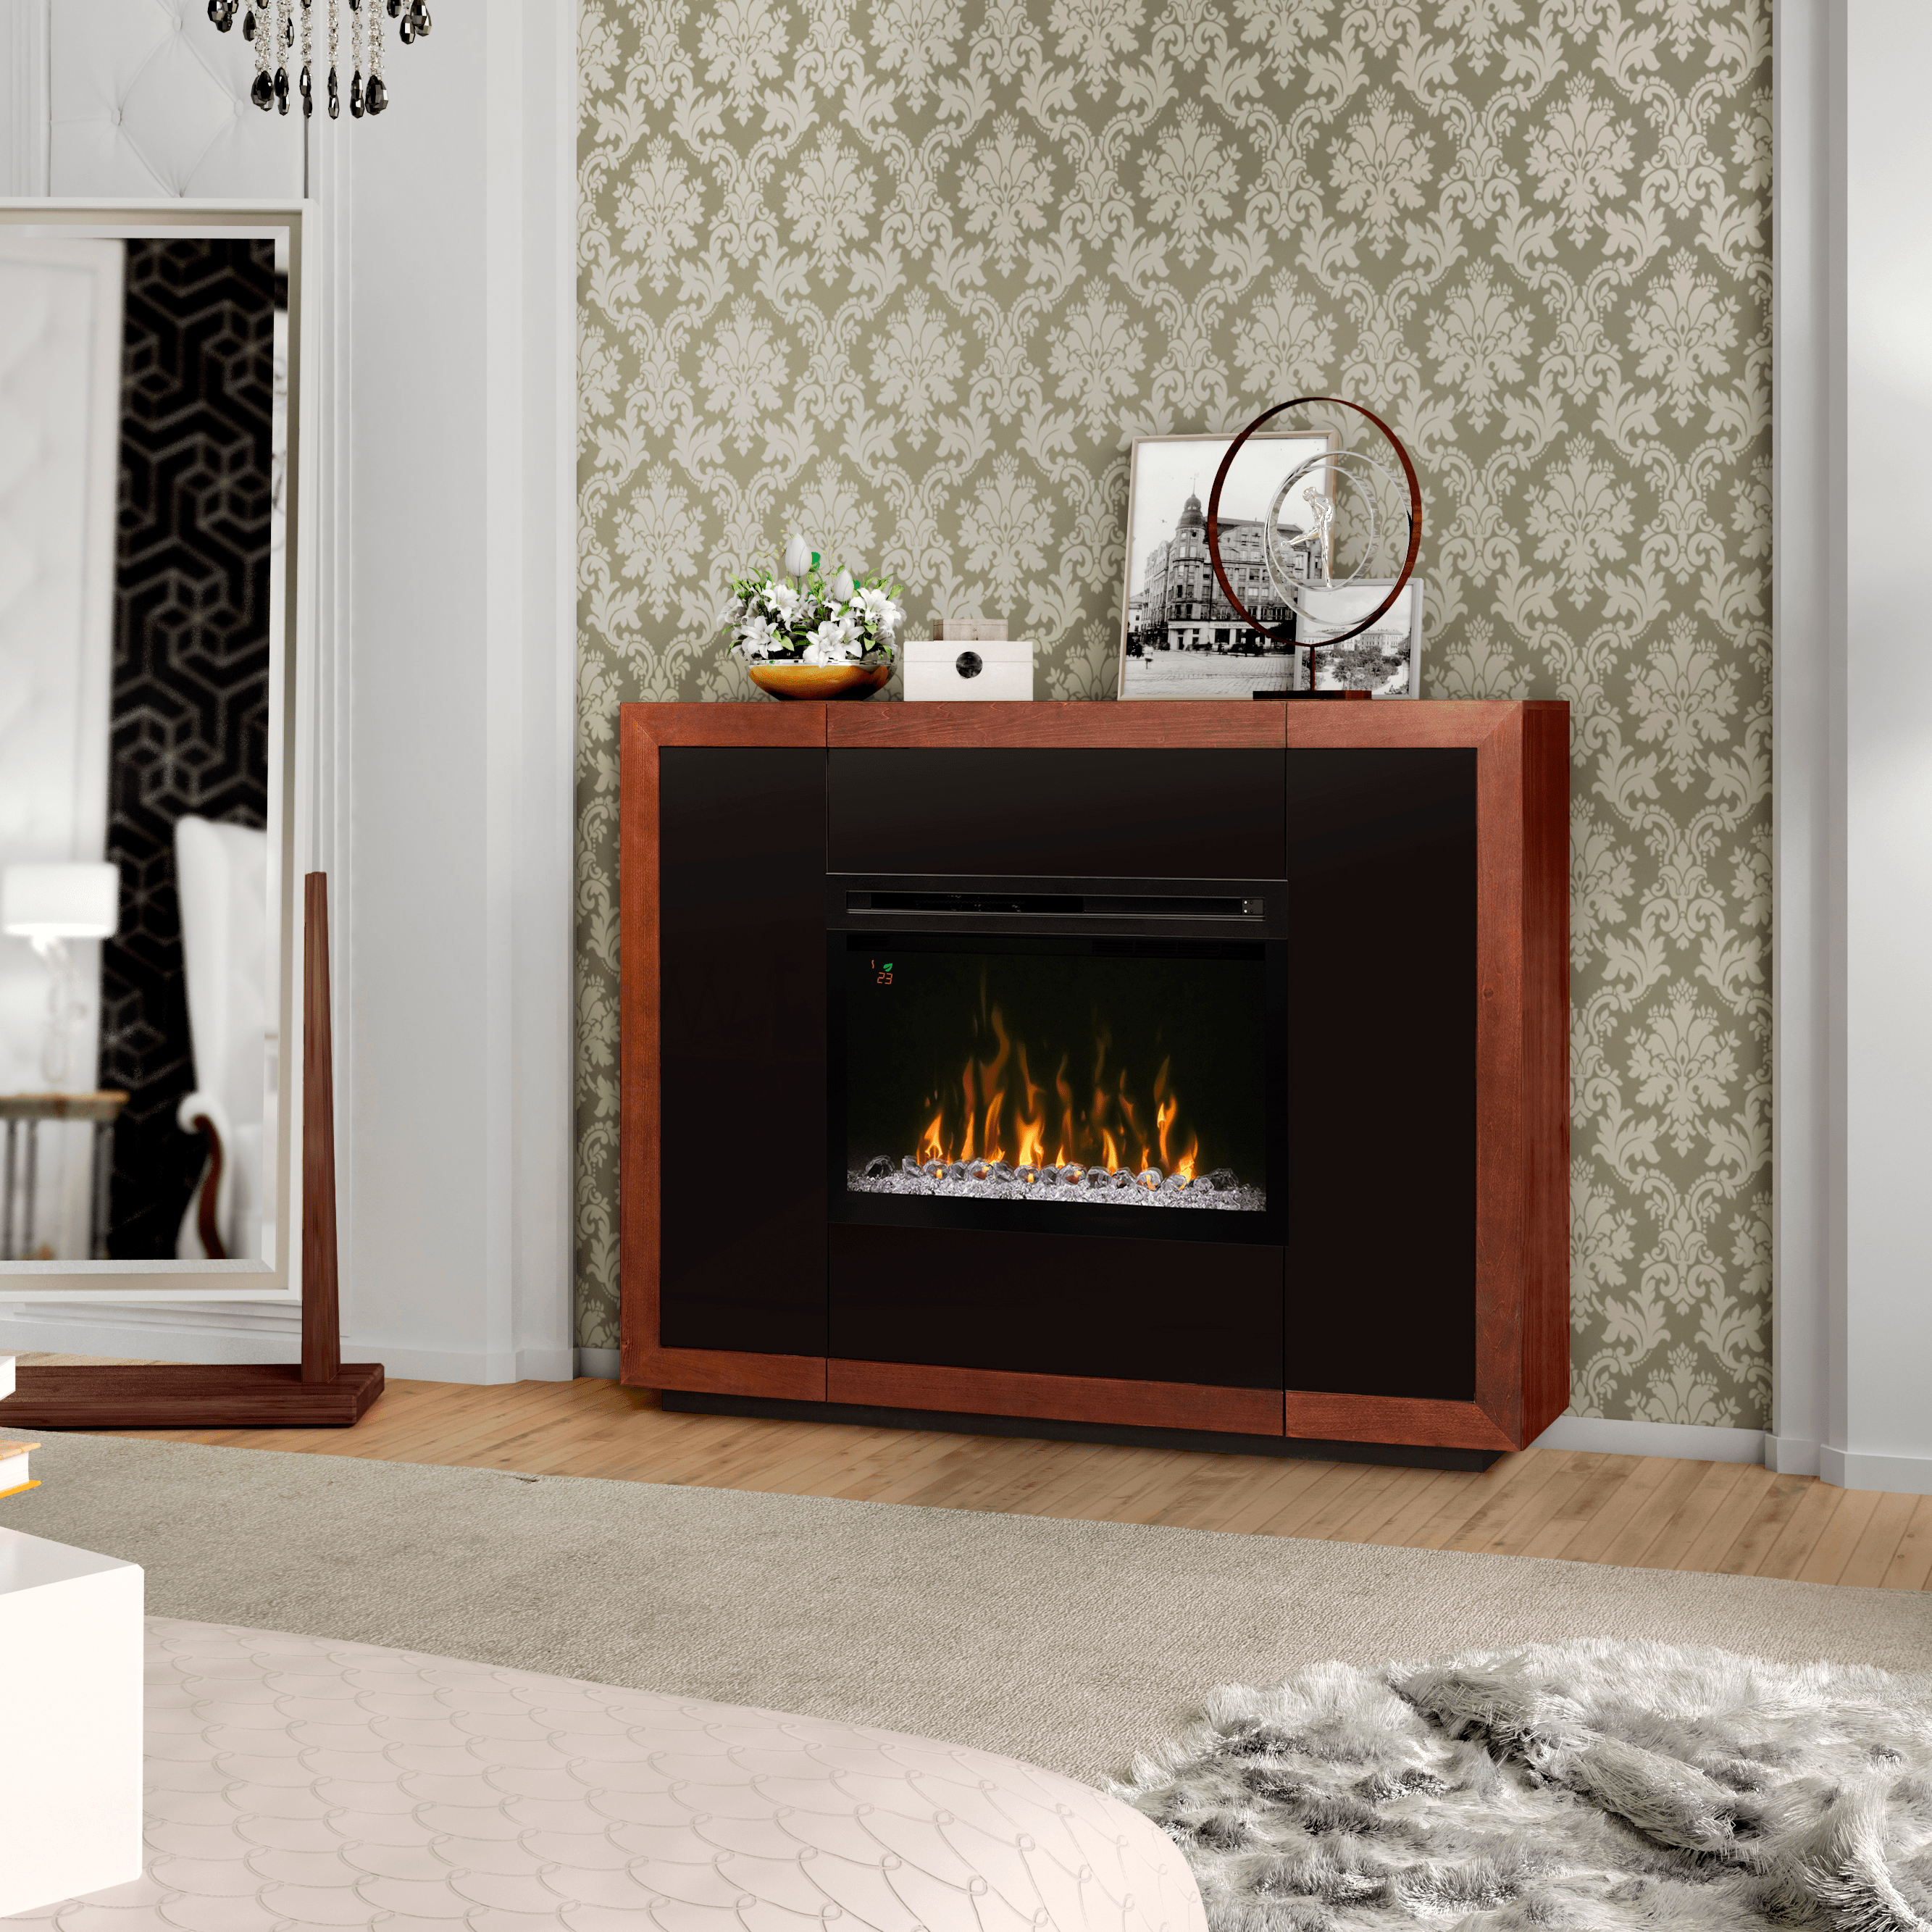 economy heatilator vent list fireplaces brochure series fireplace nxt novus con gallery direct therm